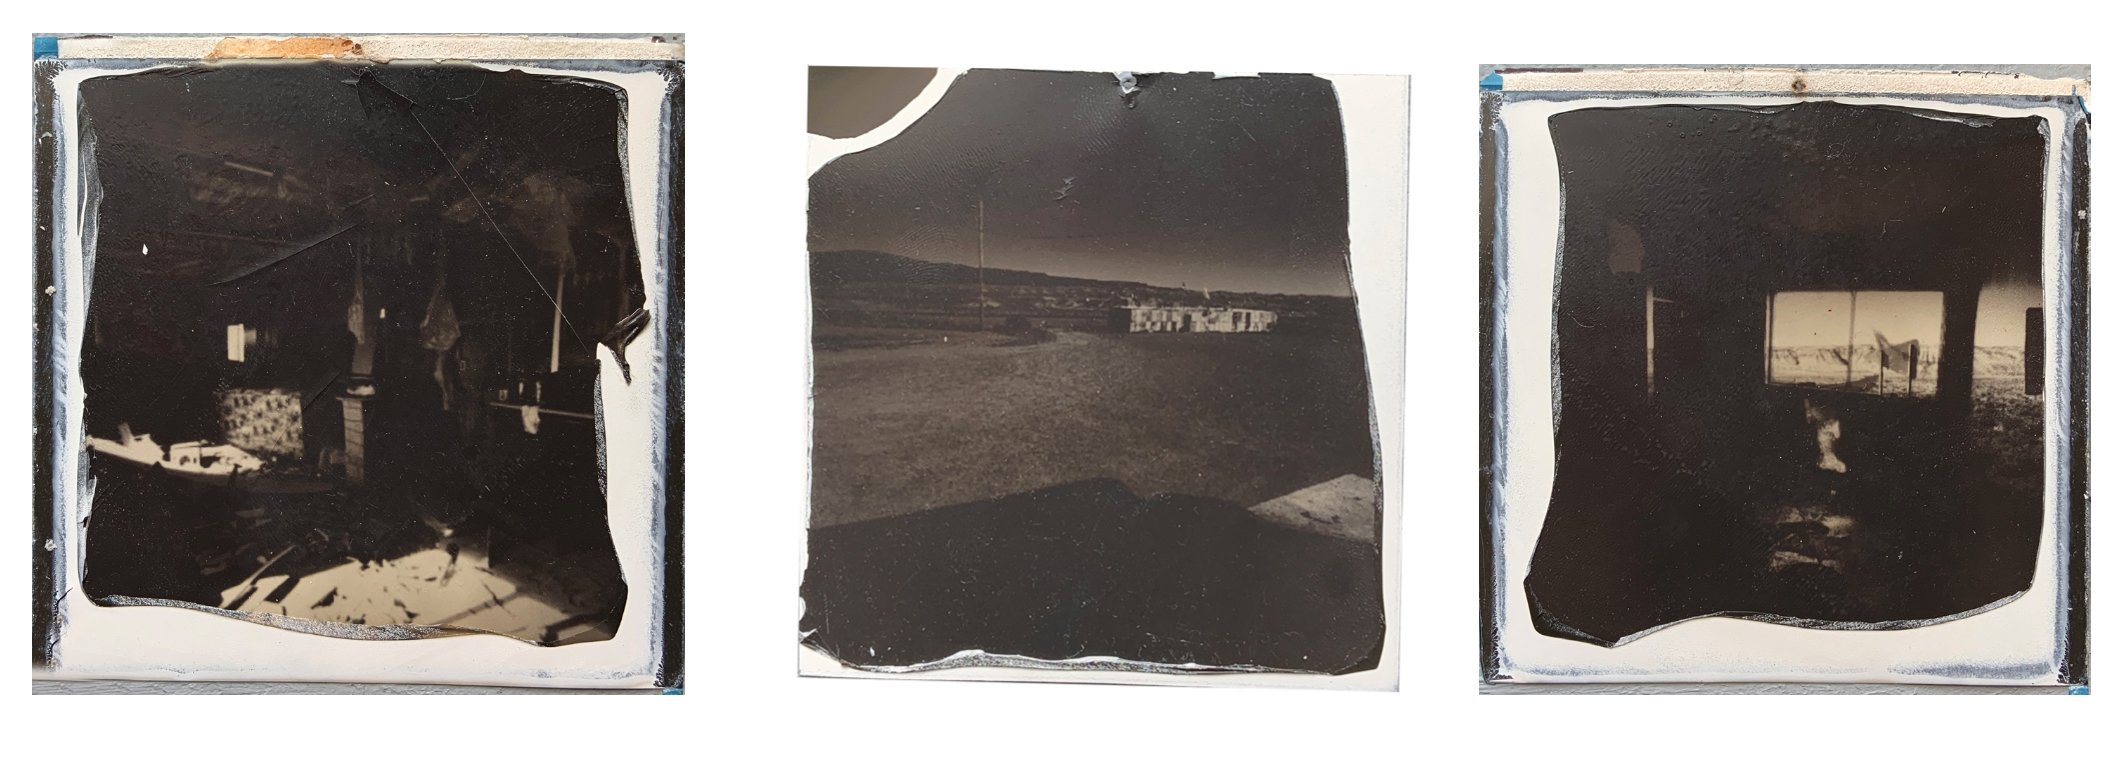 elisabetta riccio - triptych of an experiment with the polaroid sx-70 made in the navajo reservation